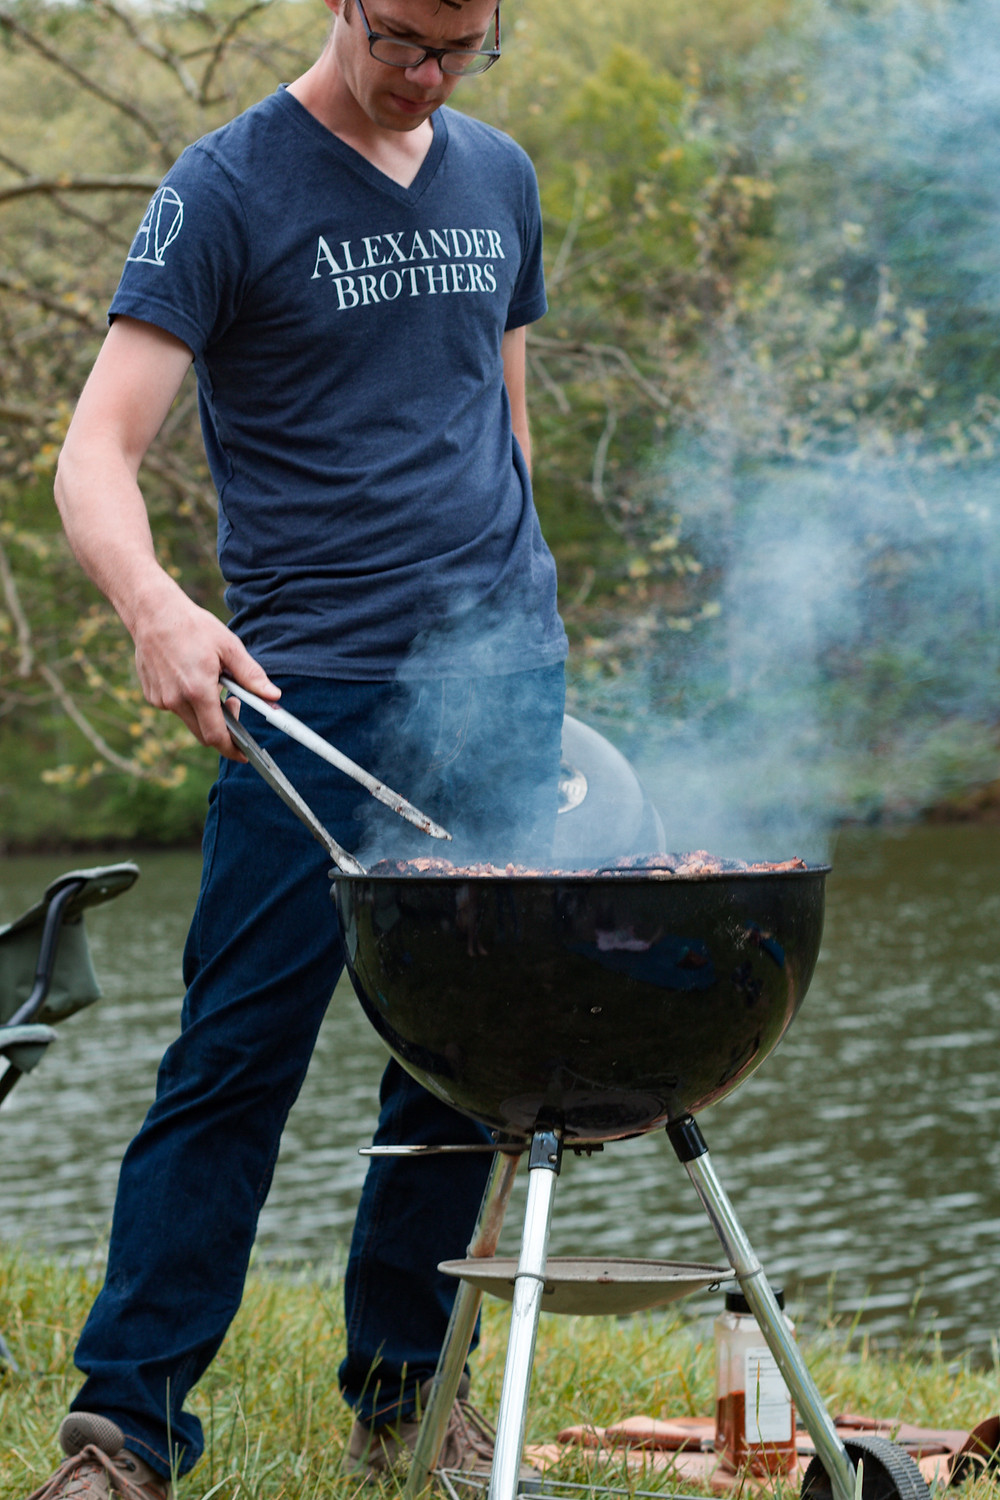 Grilling by the lake, Charcoal grill, Weber grill, 4th of july grill tips